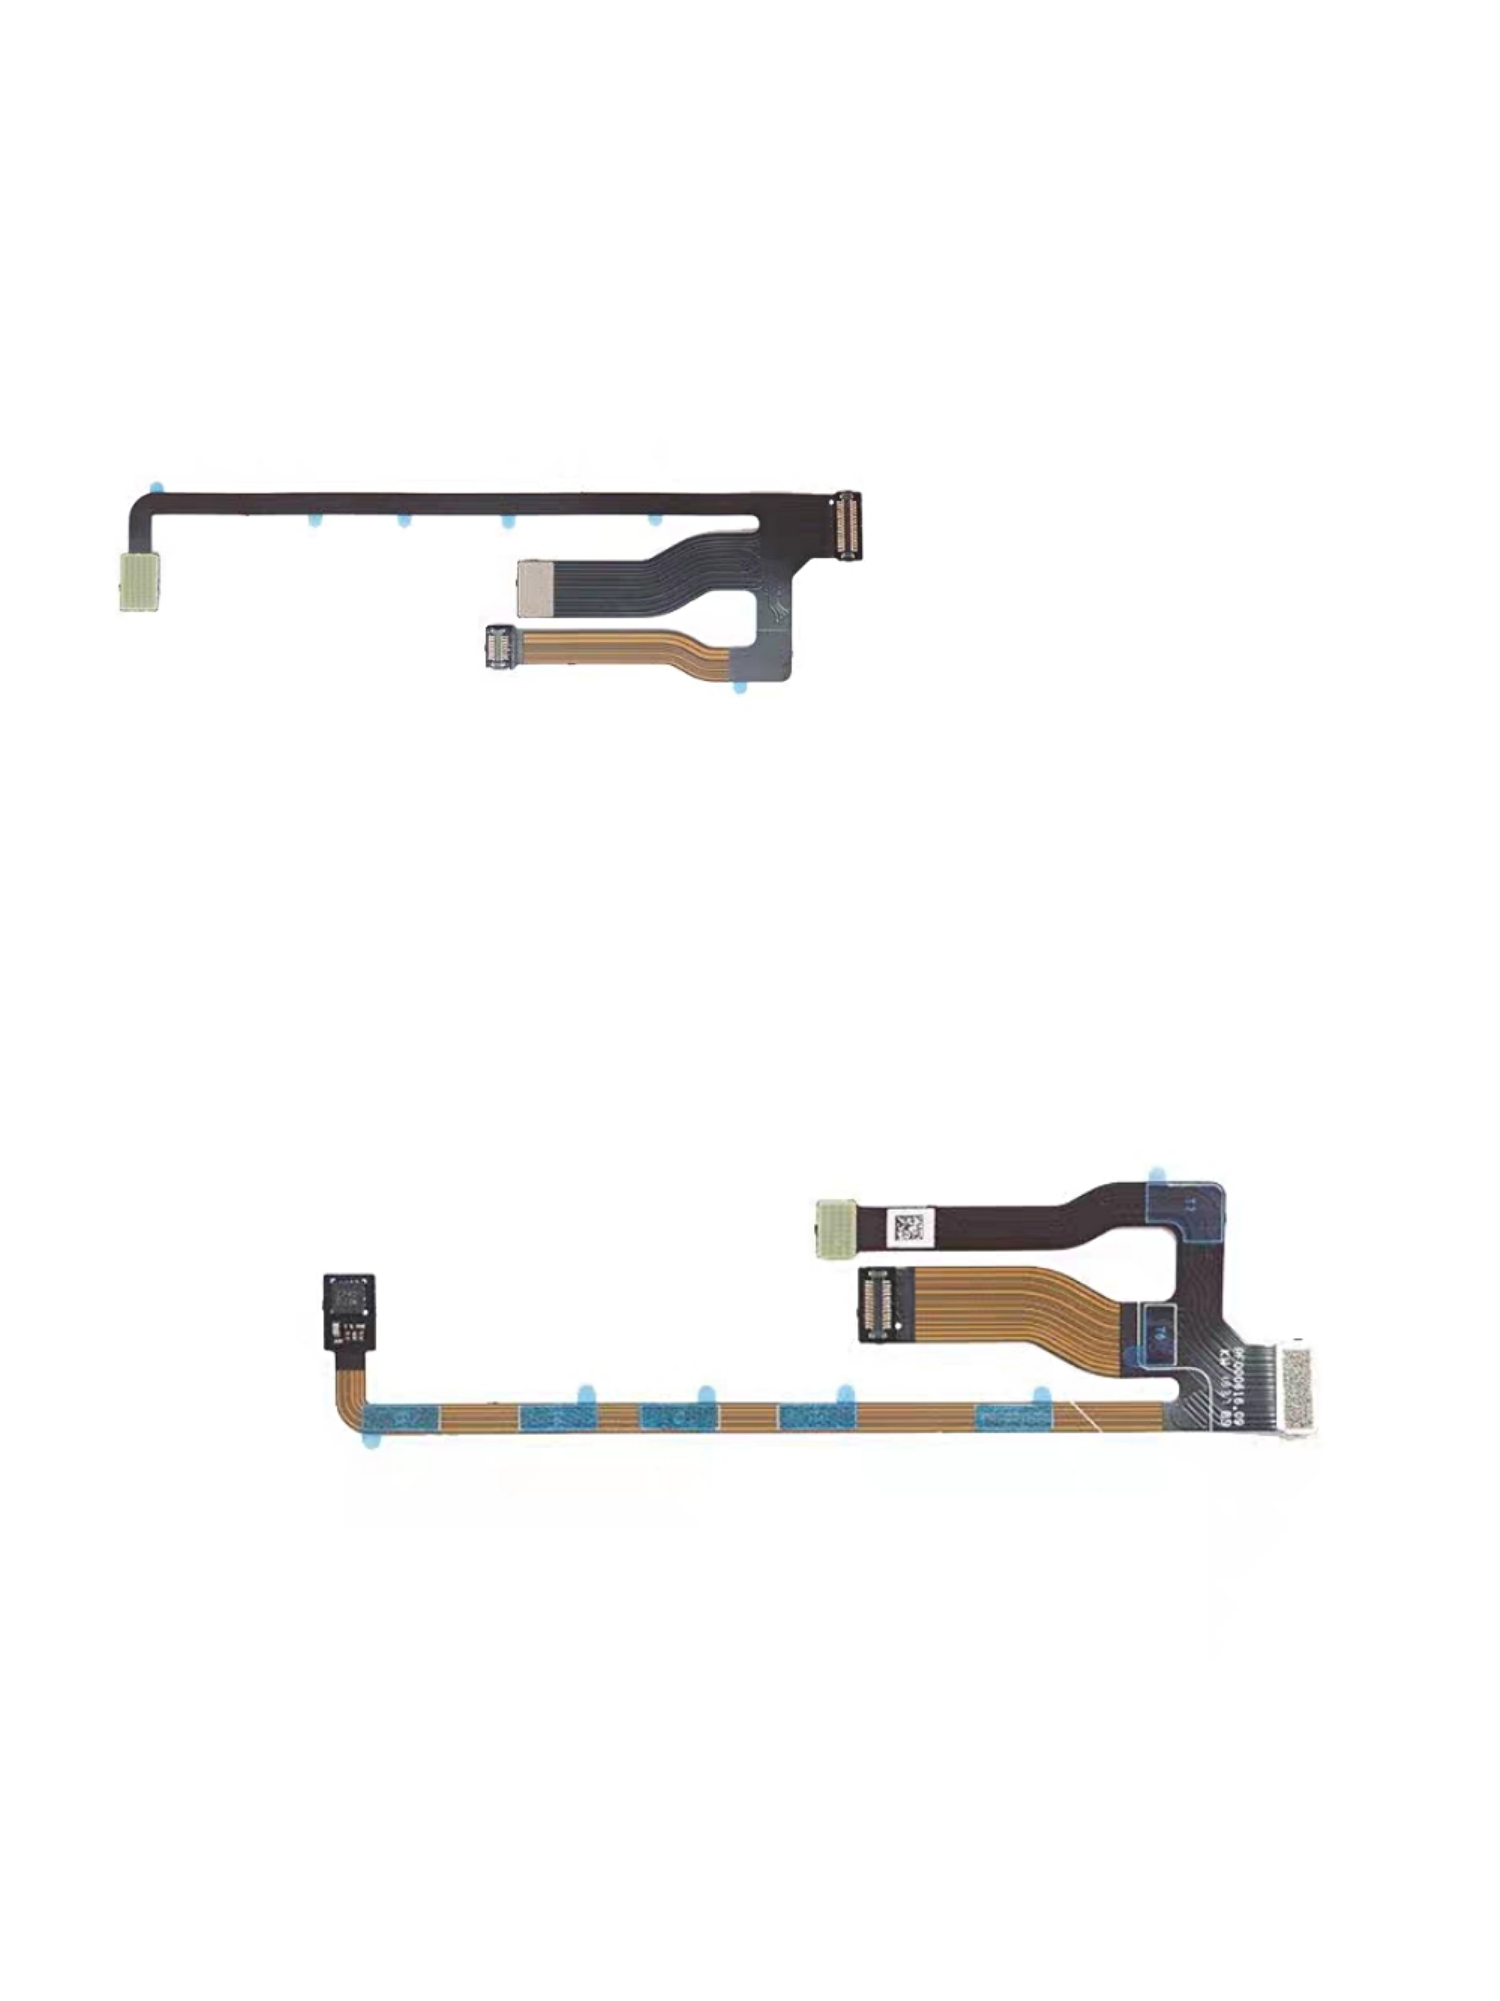 Brand New Mavic Mini Gimbal Repair Parts Replacement Accessories 3 in 1 Soft Flex Cable for